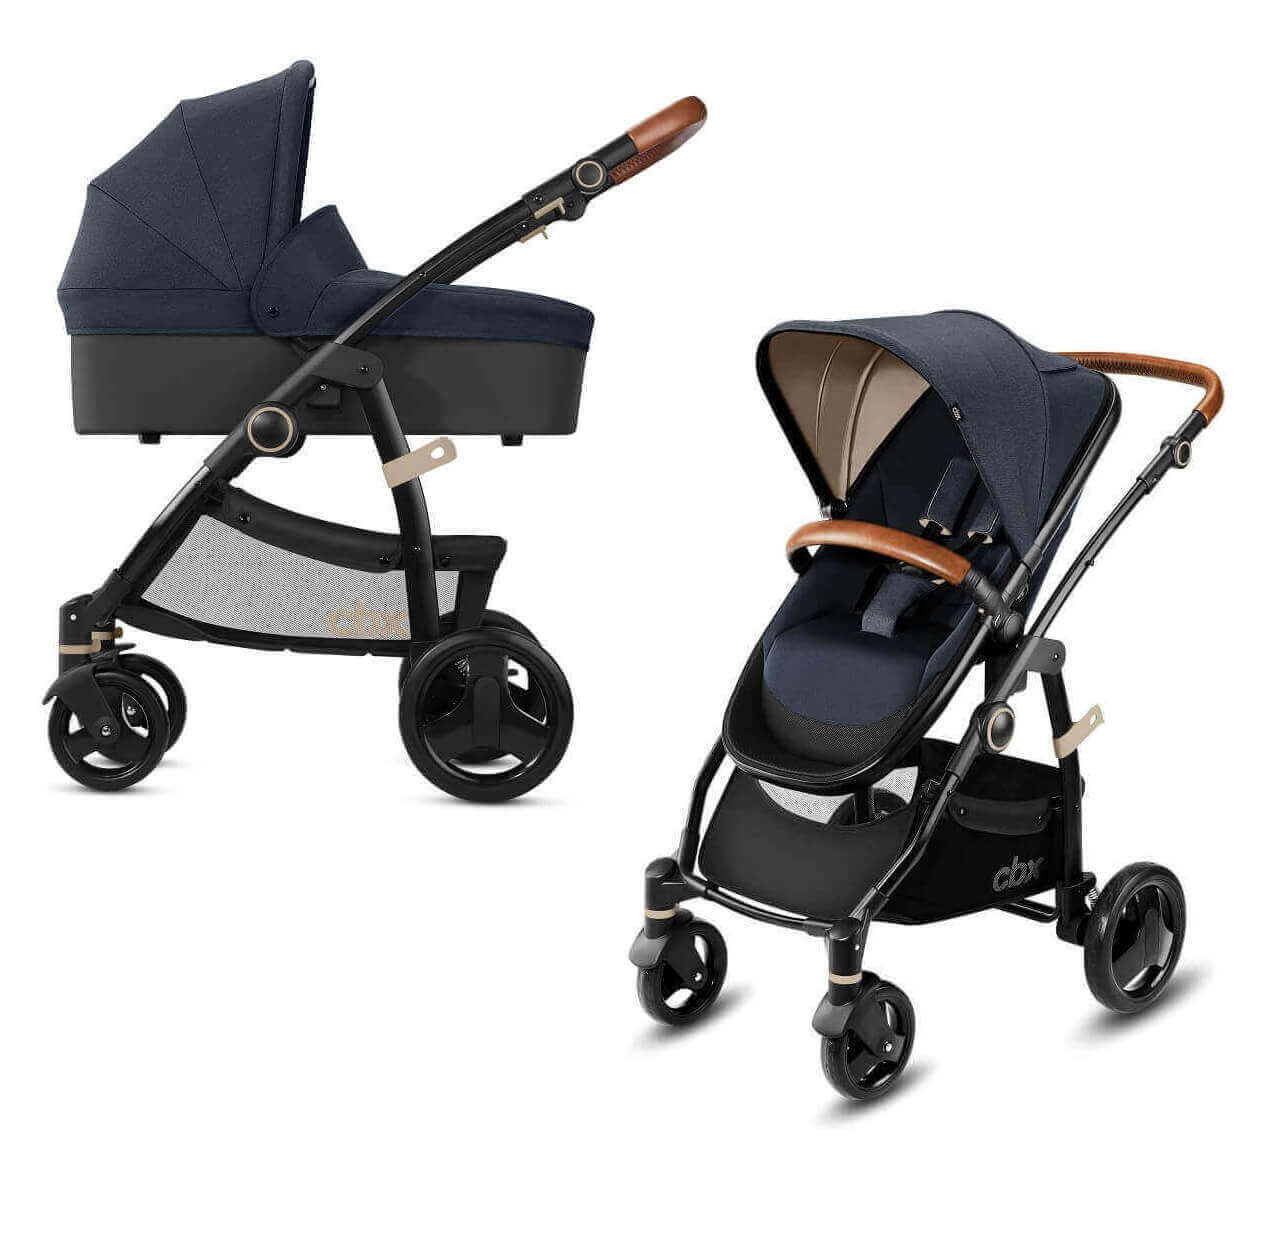 CBX by Cybex Leotie Lux 2 в 1 Детская коляска 2 в 1 CBX by Cybex Leotie Lux Jeansy Blue CBX_18_090_LEOTIE_LUX_BLUE_WITHCARRYCOT_0748_DERV_HQ_-_копия.jpg